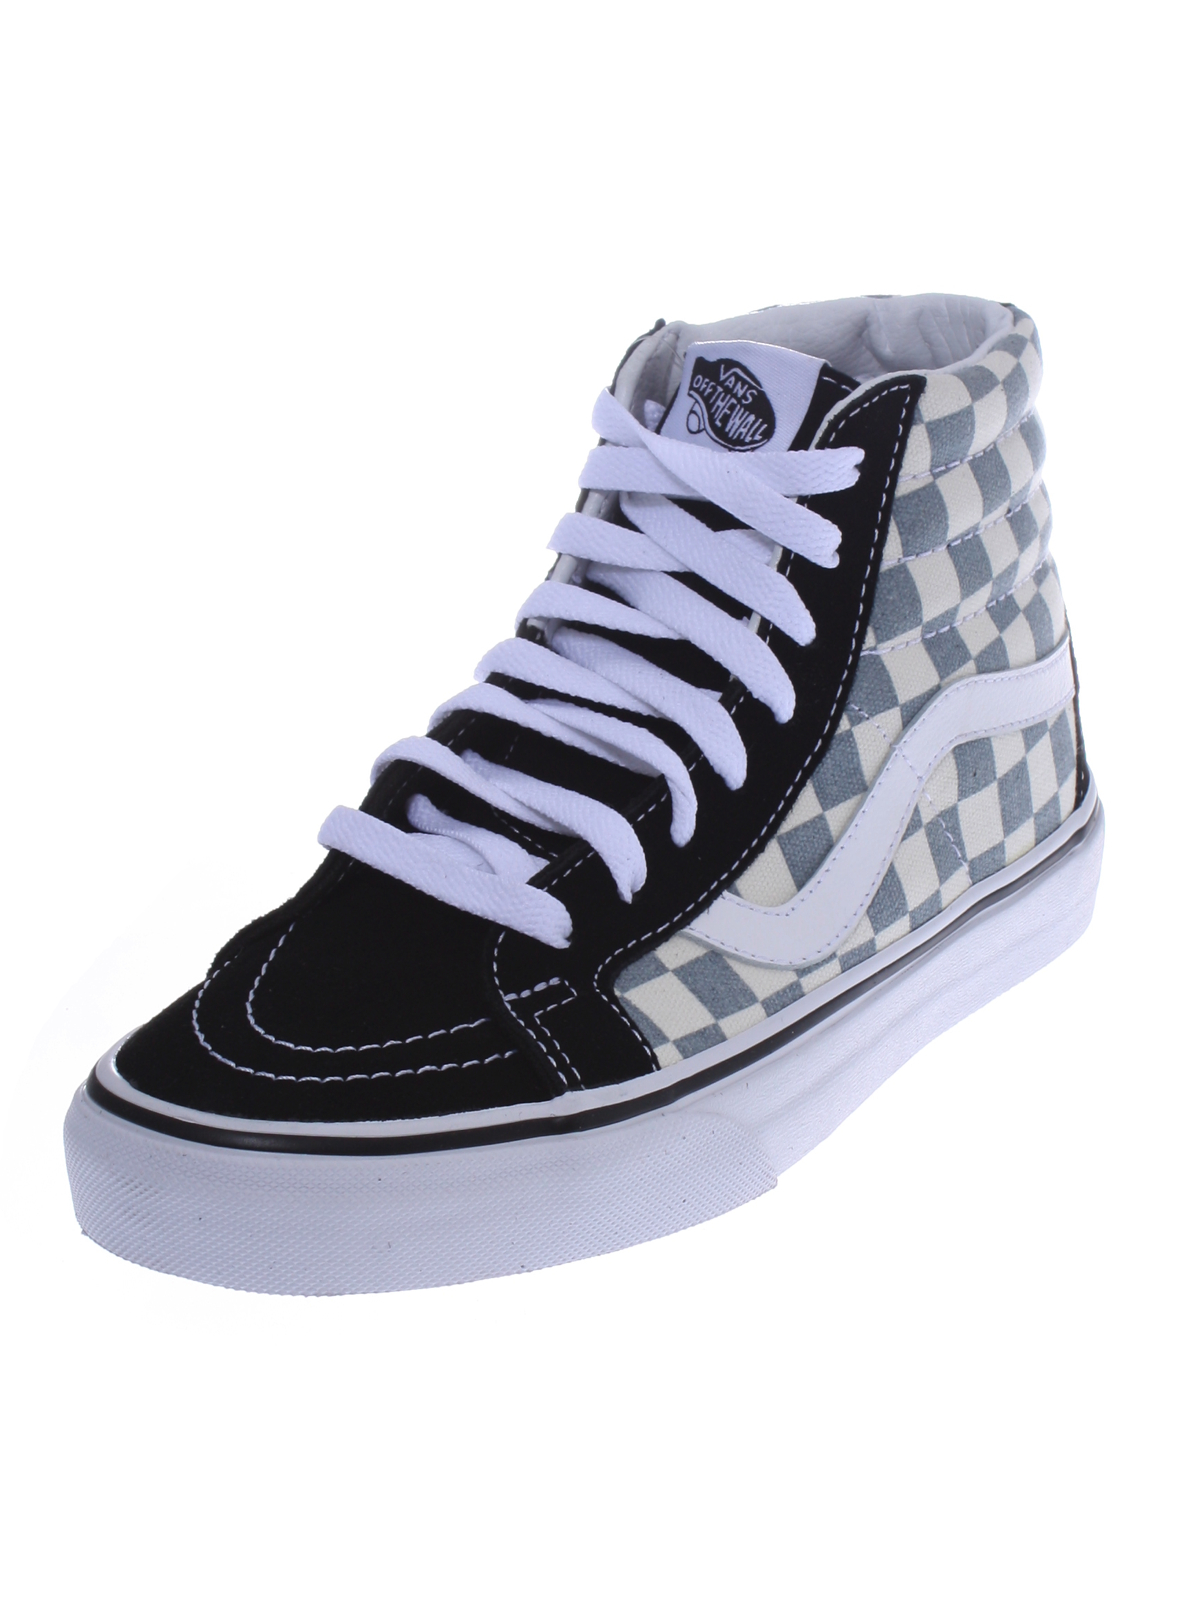 vans sk8 hi reissue unisex erwachsene sneaker v3caib7. Black Bedroom Furniture Sets. Home Design Ideas